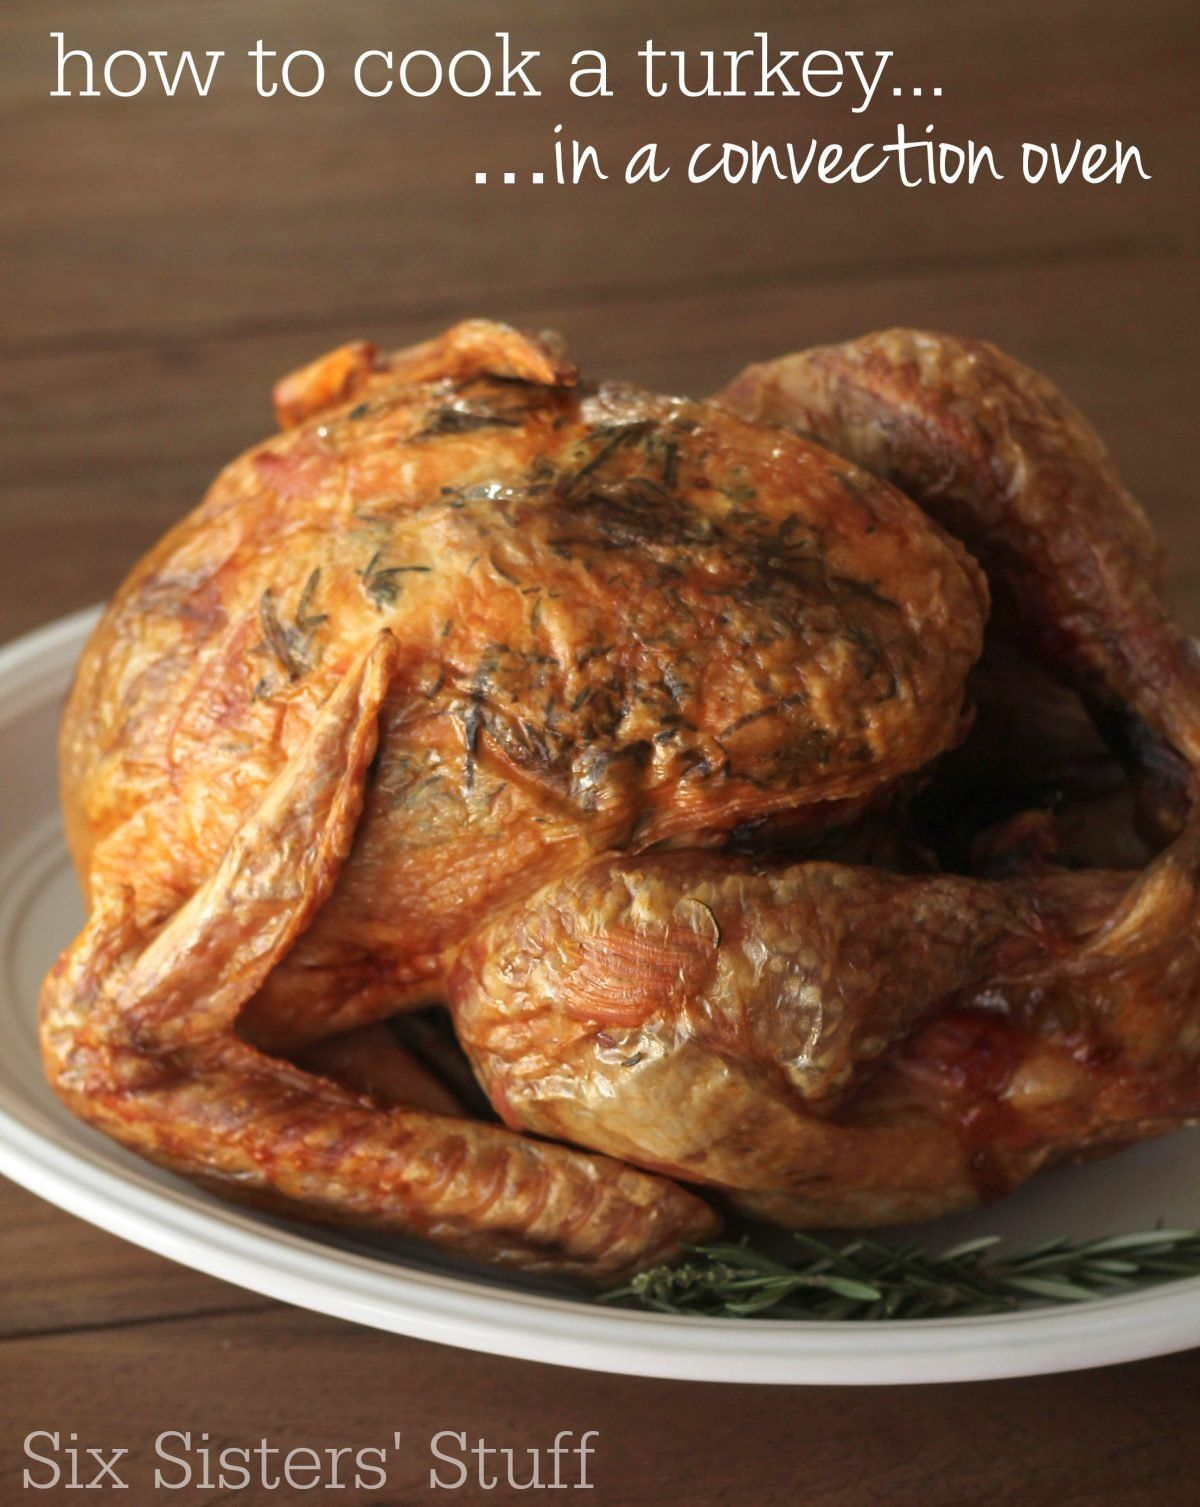 How To Cook A Turkey {in a convection oven} Six Sisters